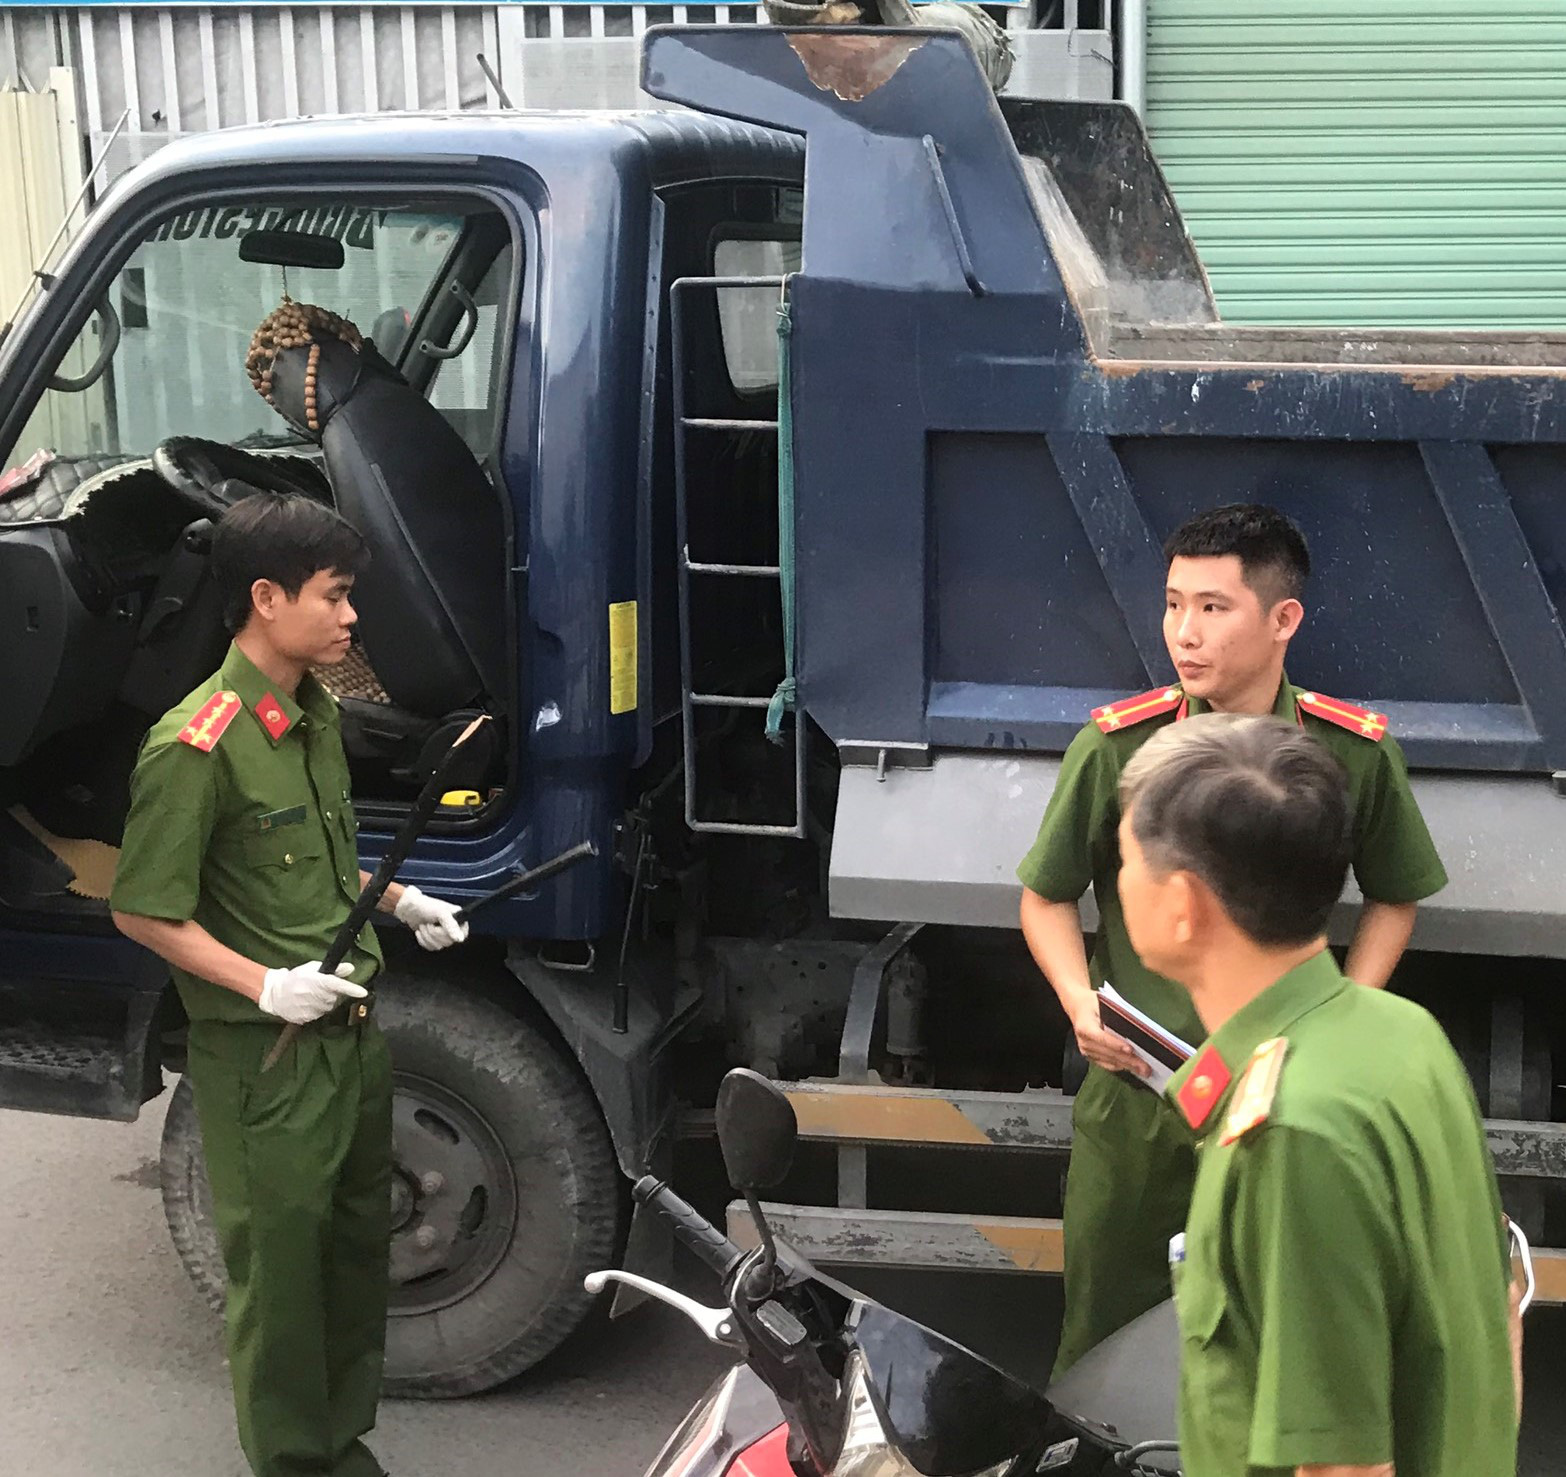 Cut-off Vietnamese trucker arrested for beating motorcyclist to death